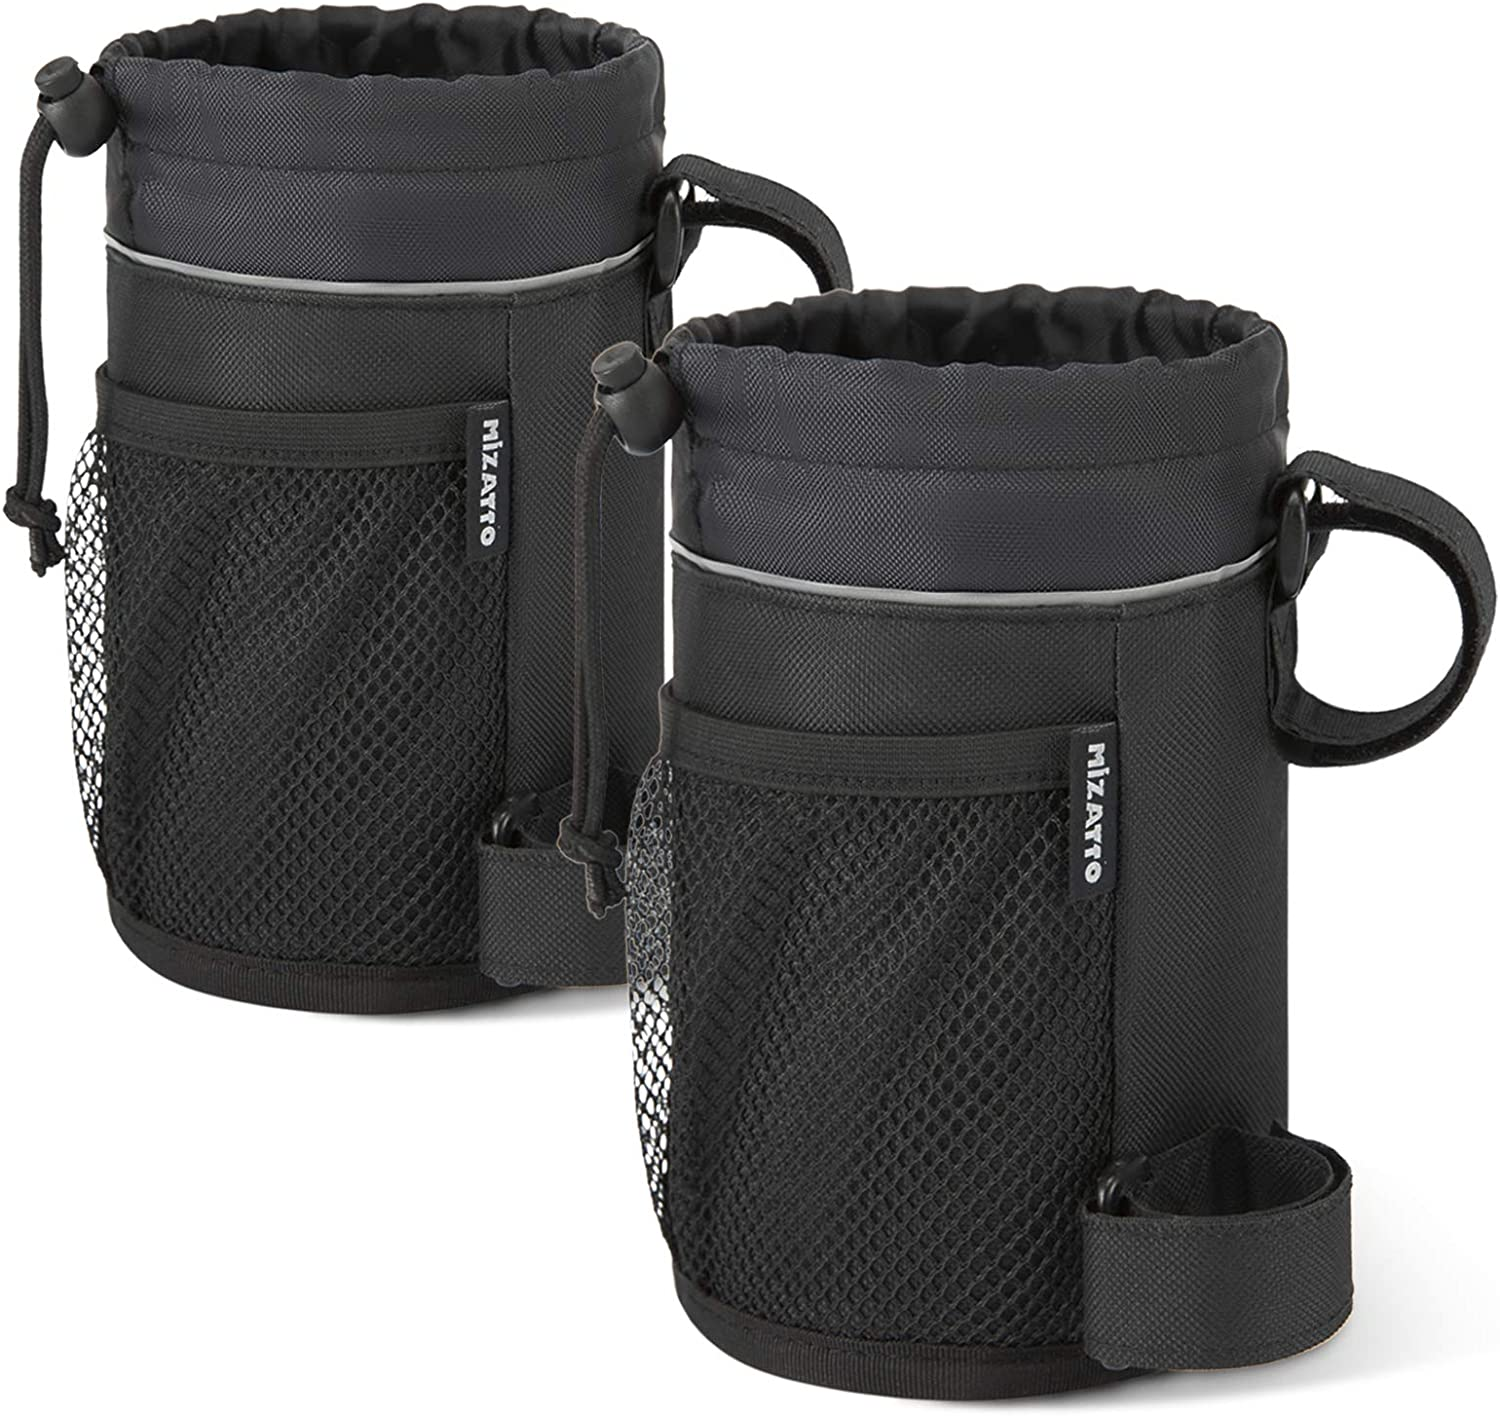 MIZATTO 2 Pack Bike Cup Holder - Water Bottle Holder for Bike, Boat, Scooter, Wheelchair etc